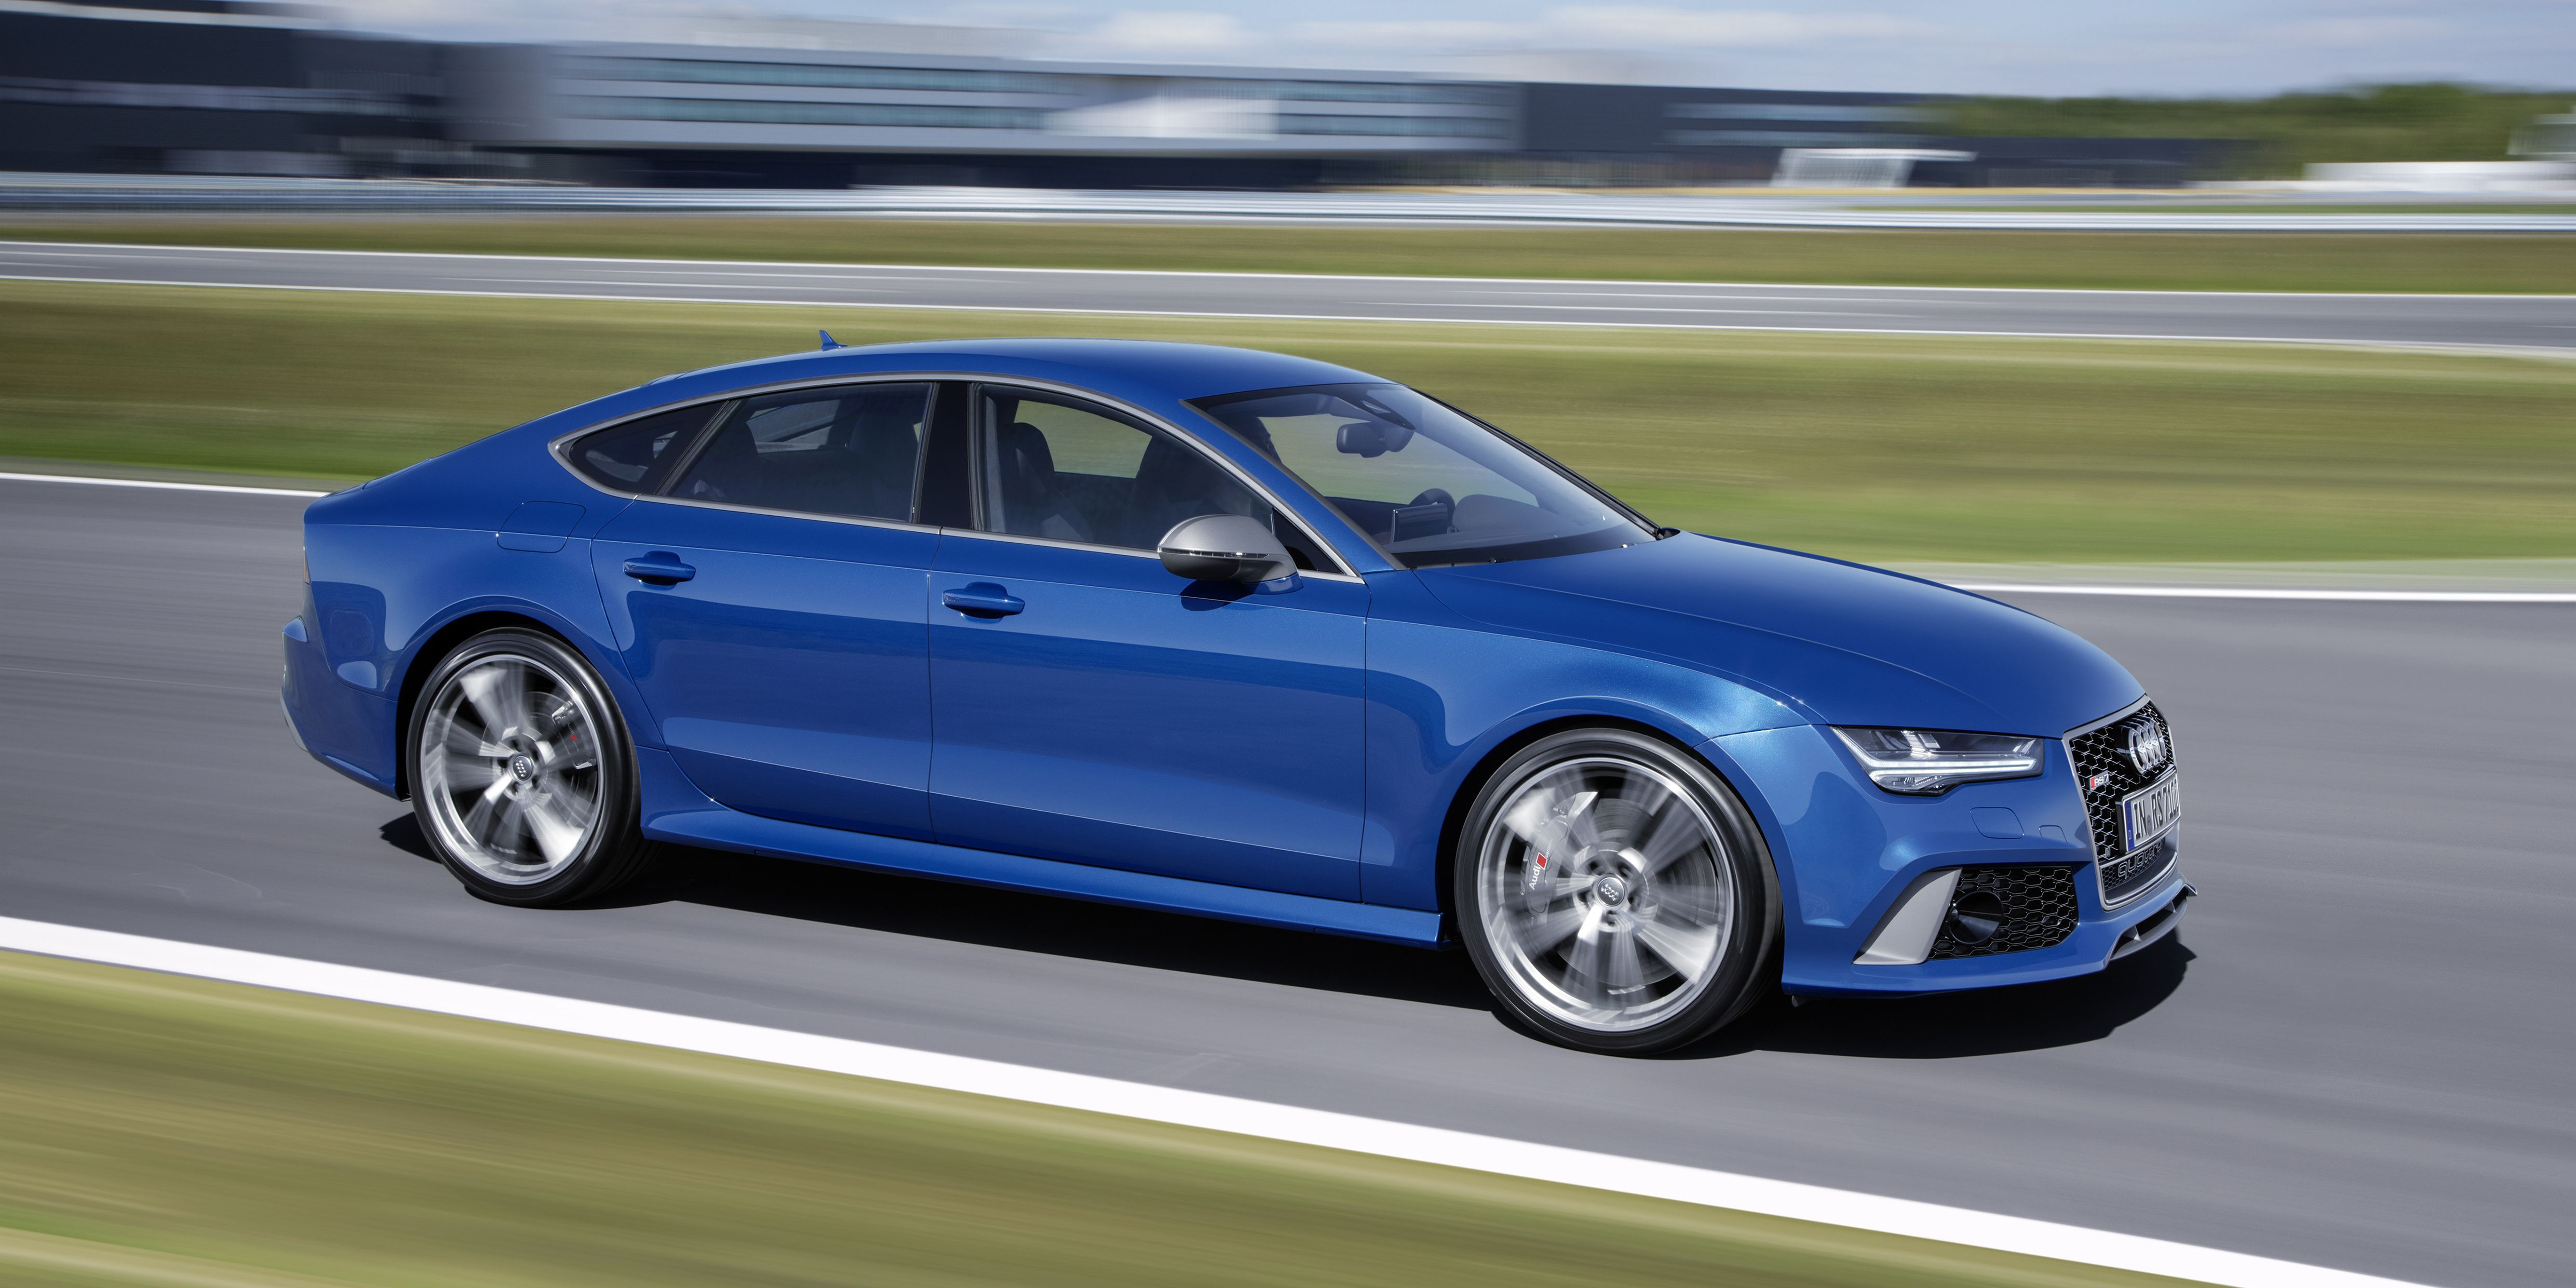 Audi Is Working on a 700 HP Hybrid RS7